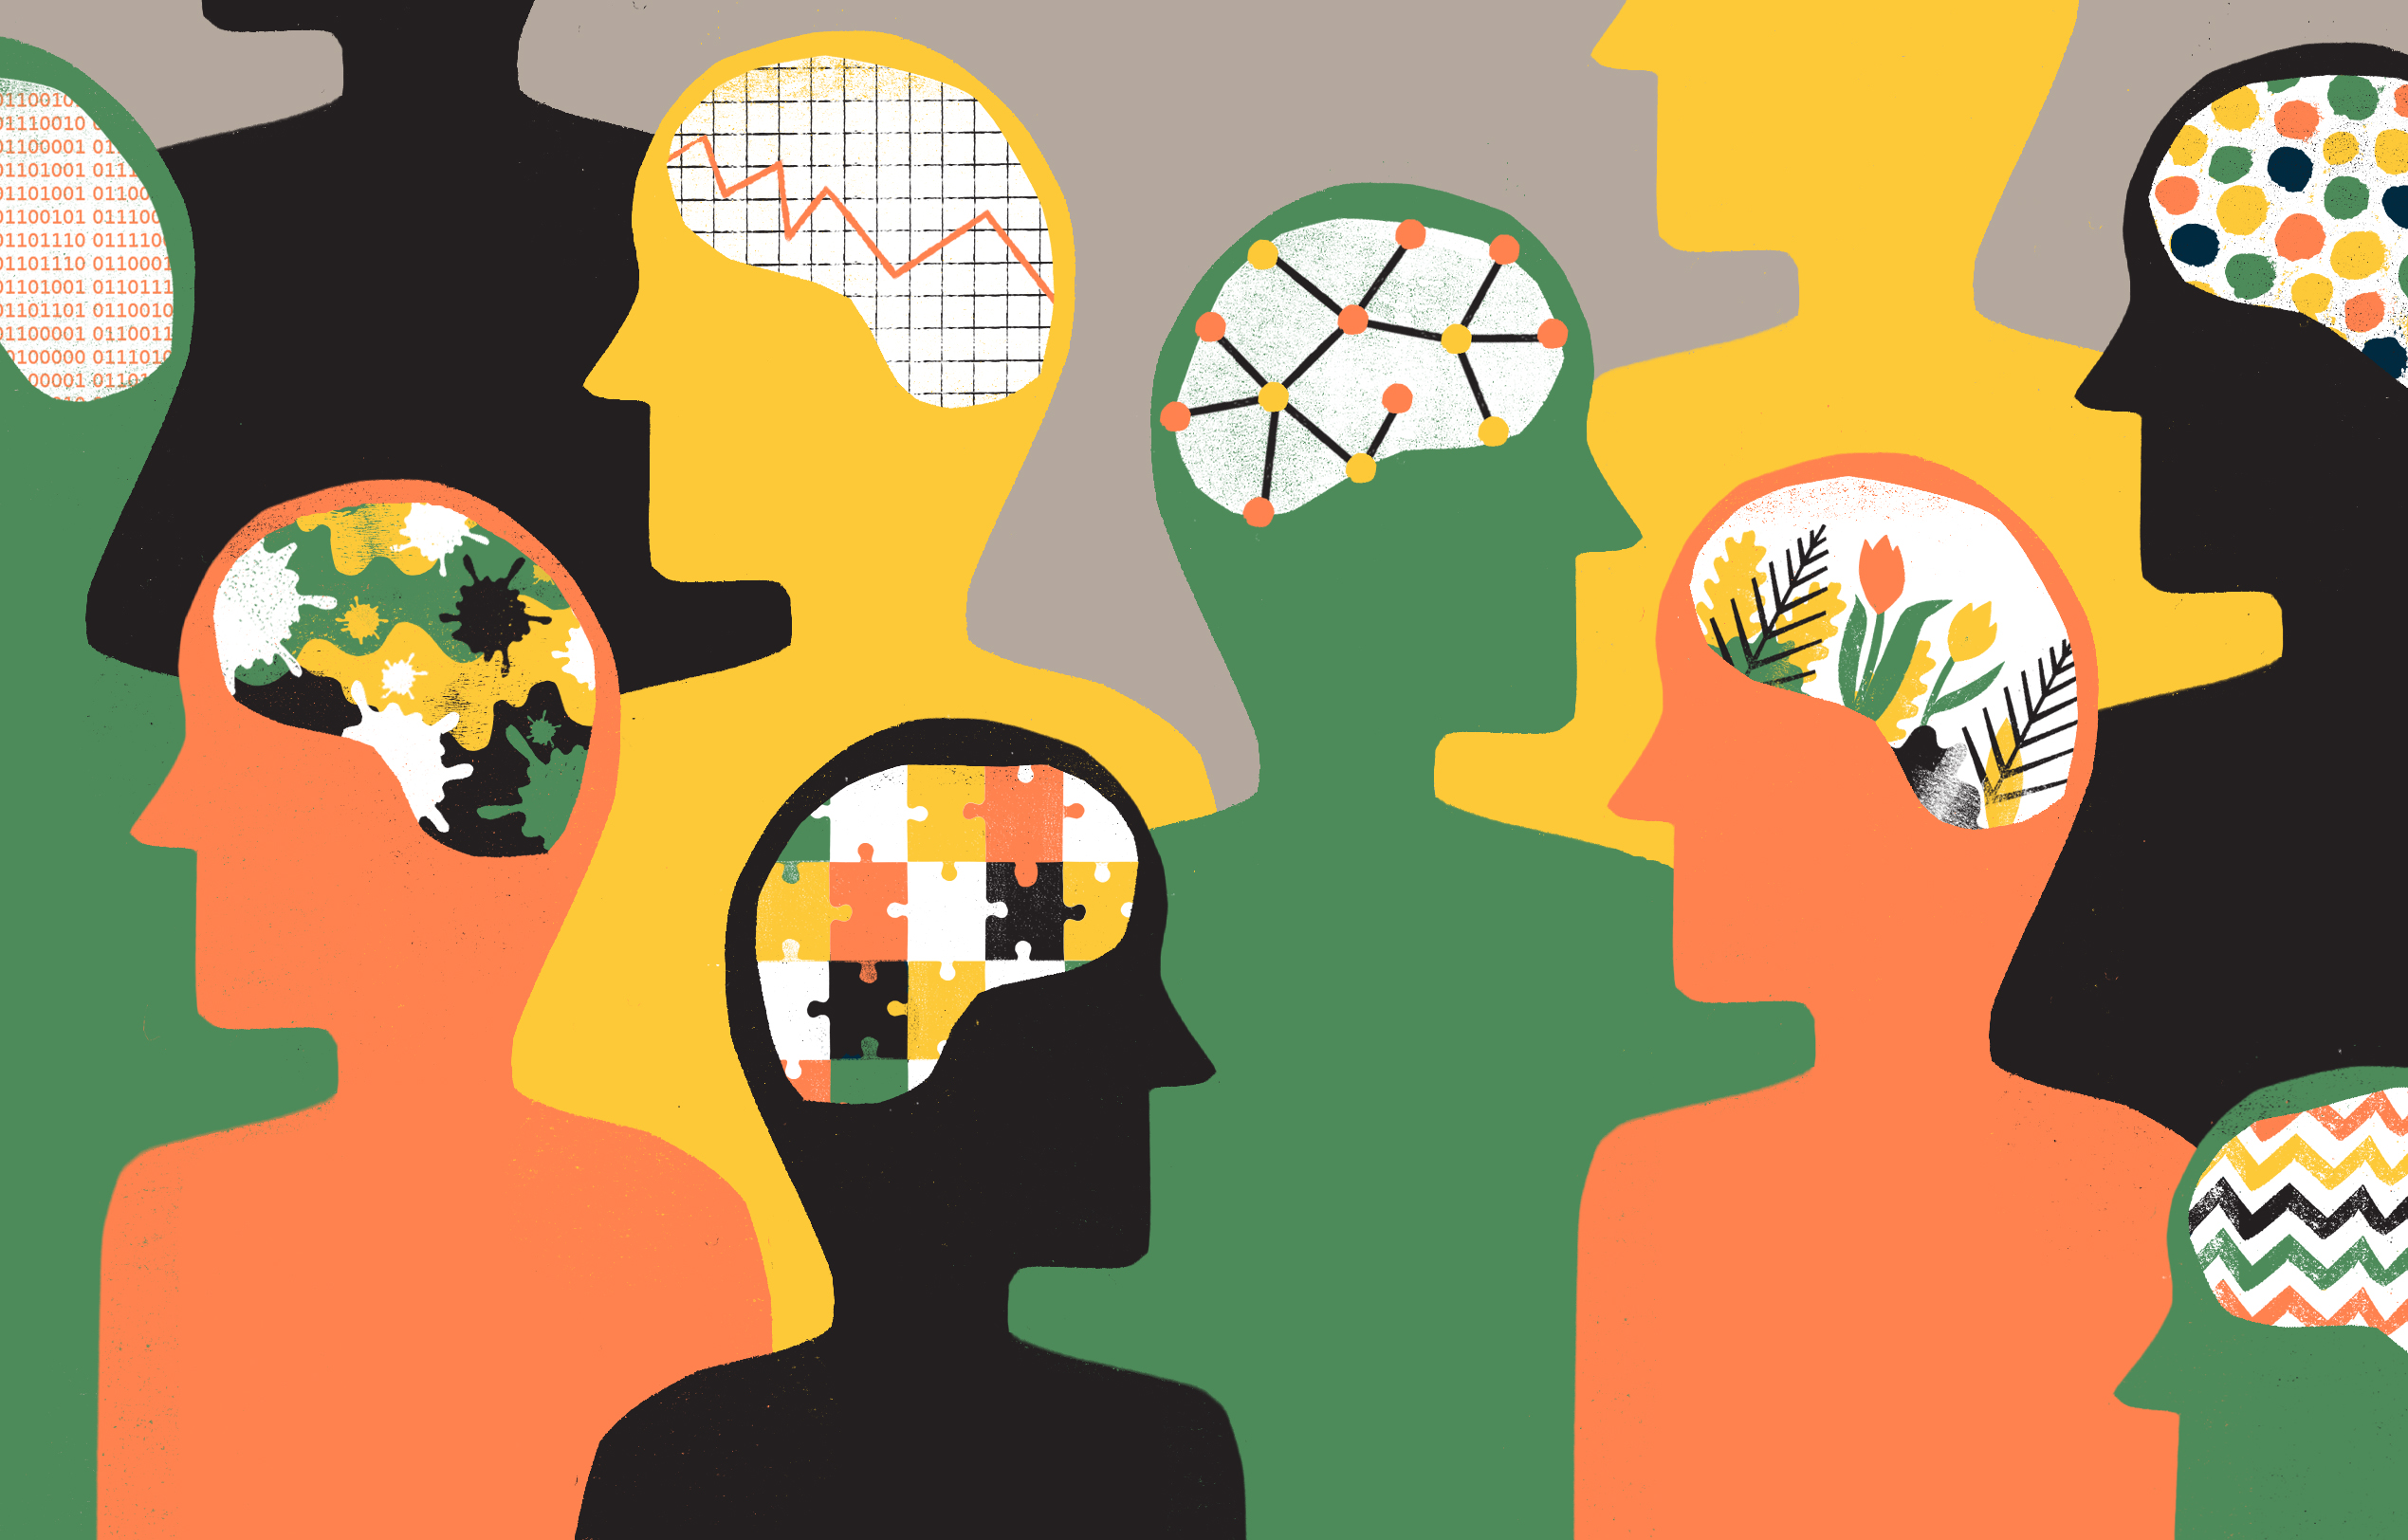 Giving thanks may make your brain more altruistic